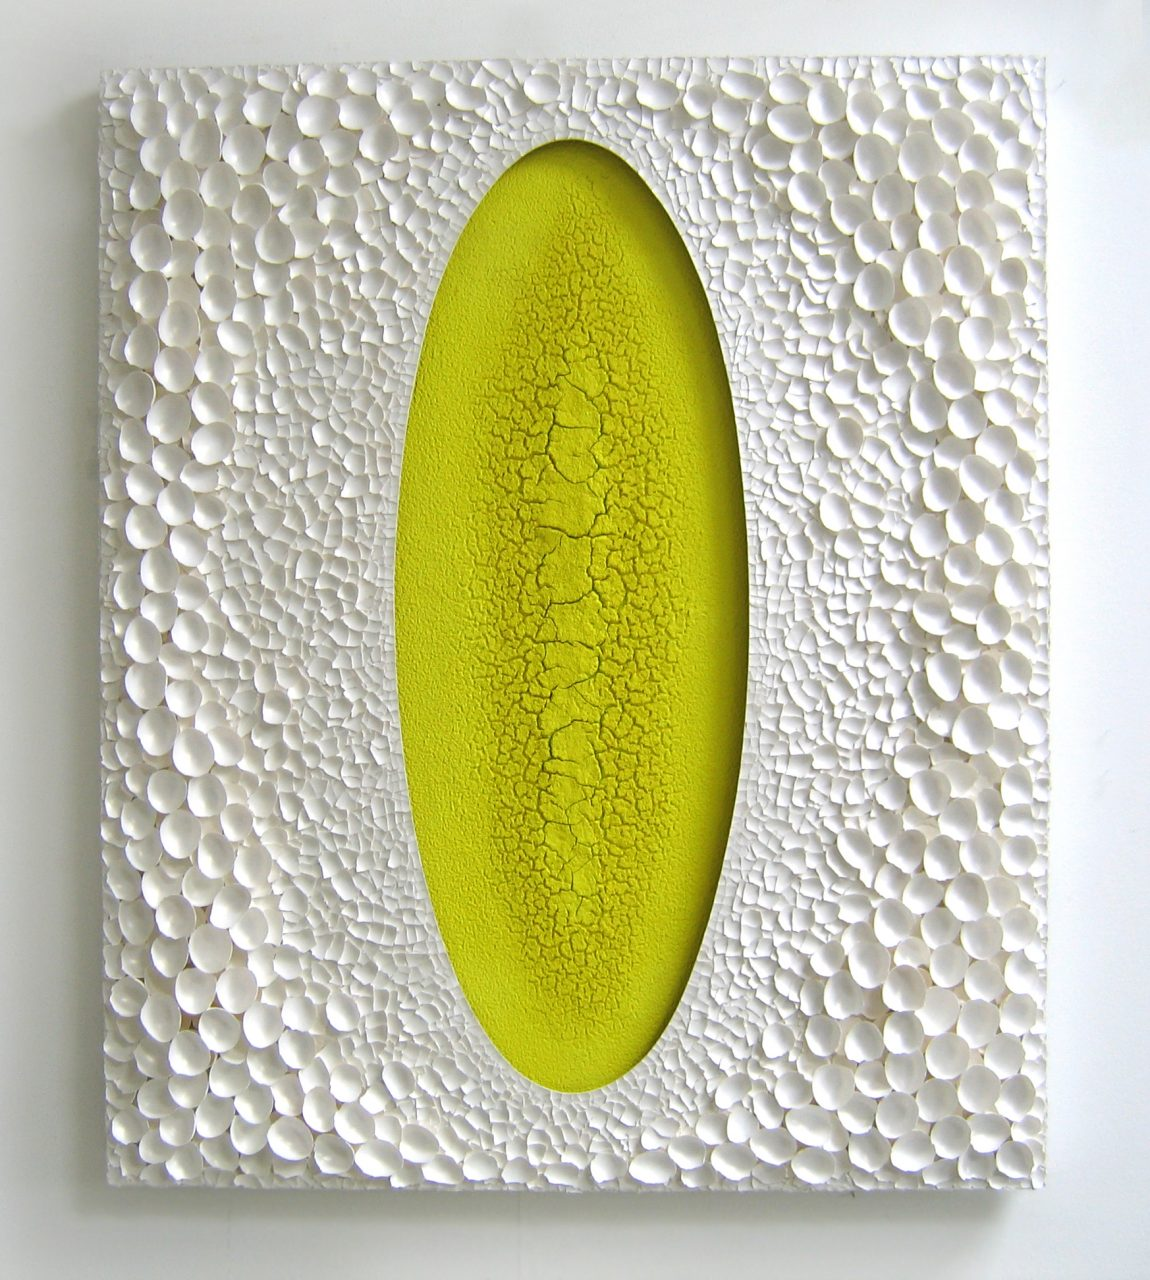 Alexei Kostroma. YELLOW OVAL, 2005, yellow lemon pigment and eggshells on canvas, 120x100x8cm, Private collection EU